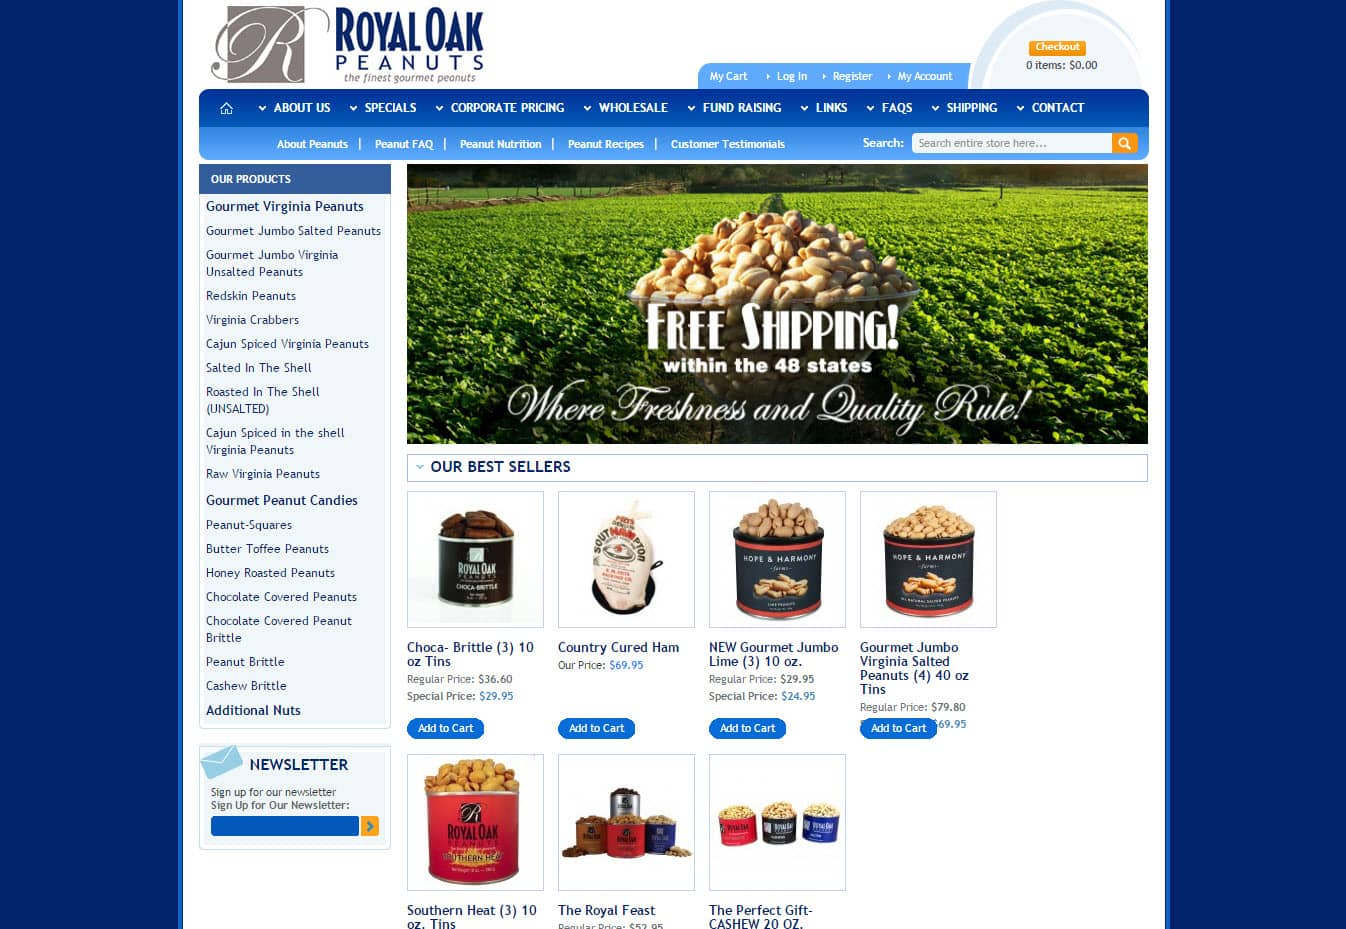 Ecommerce websites for selling products and services